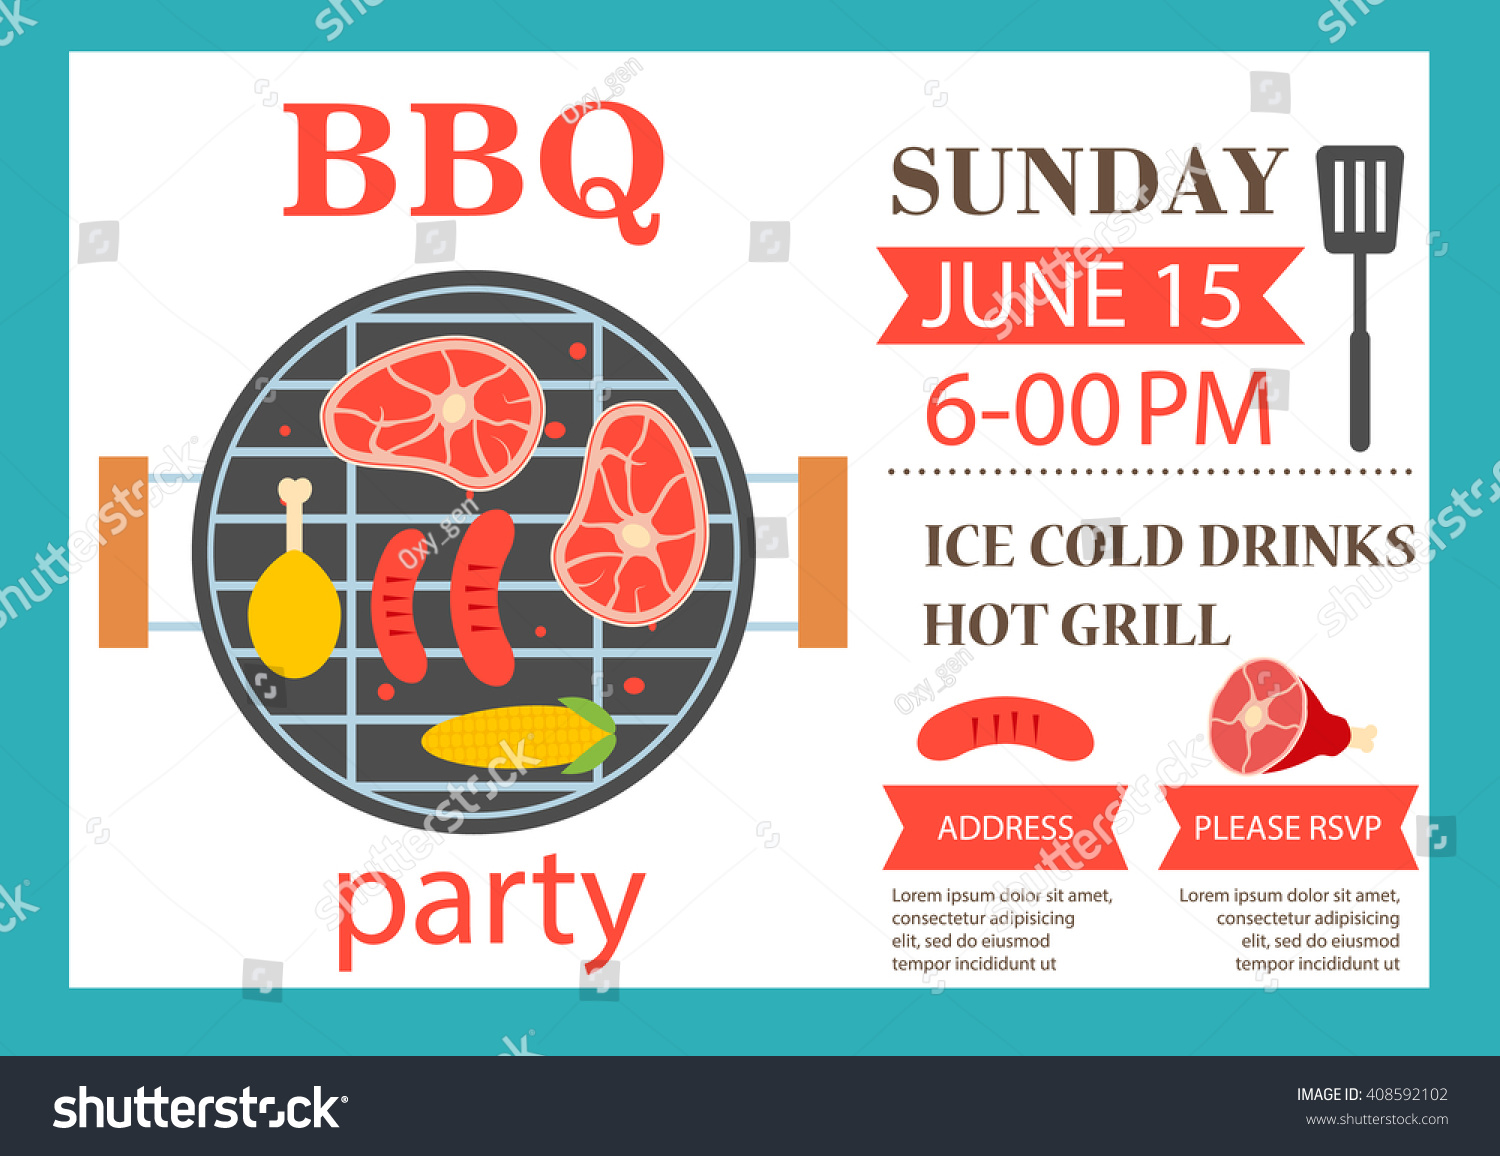 free bbq invitation templates | datariouruguay